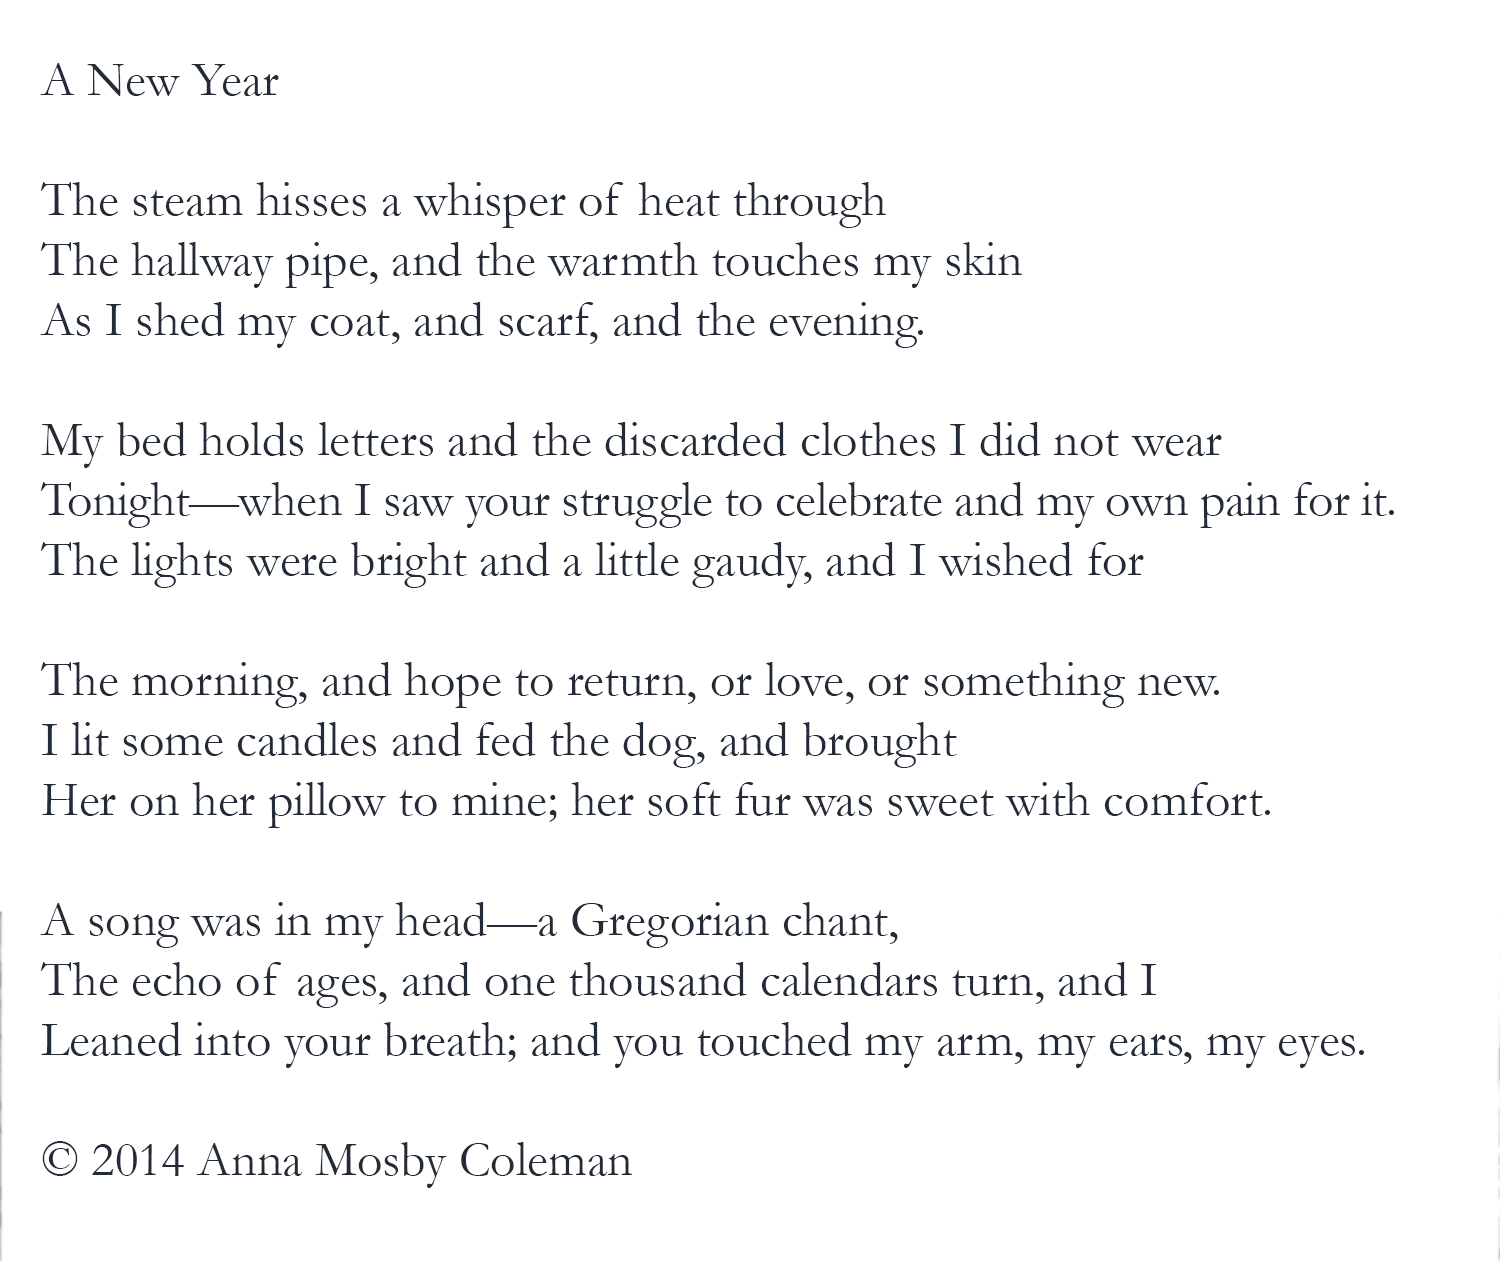 - a-new-year_2014_anna-mosby-coleman